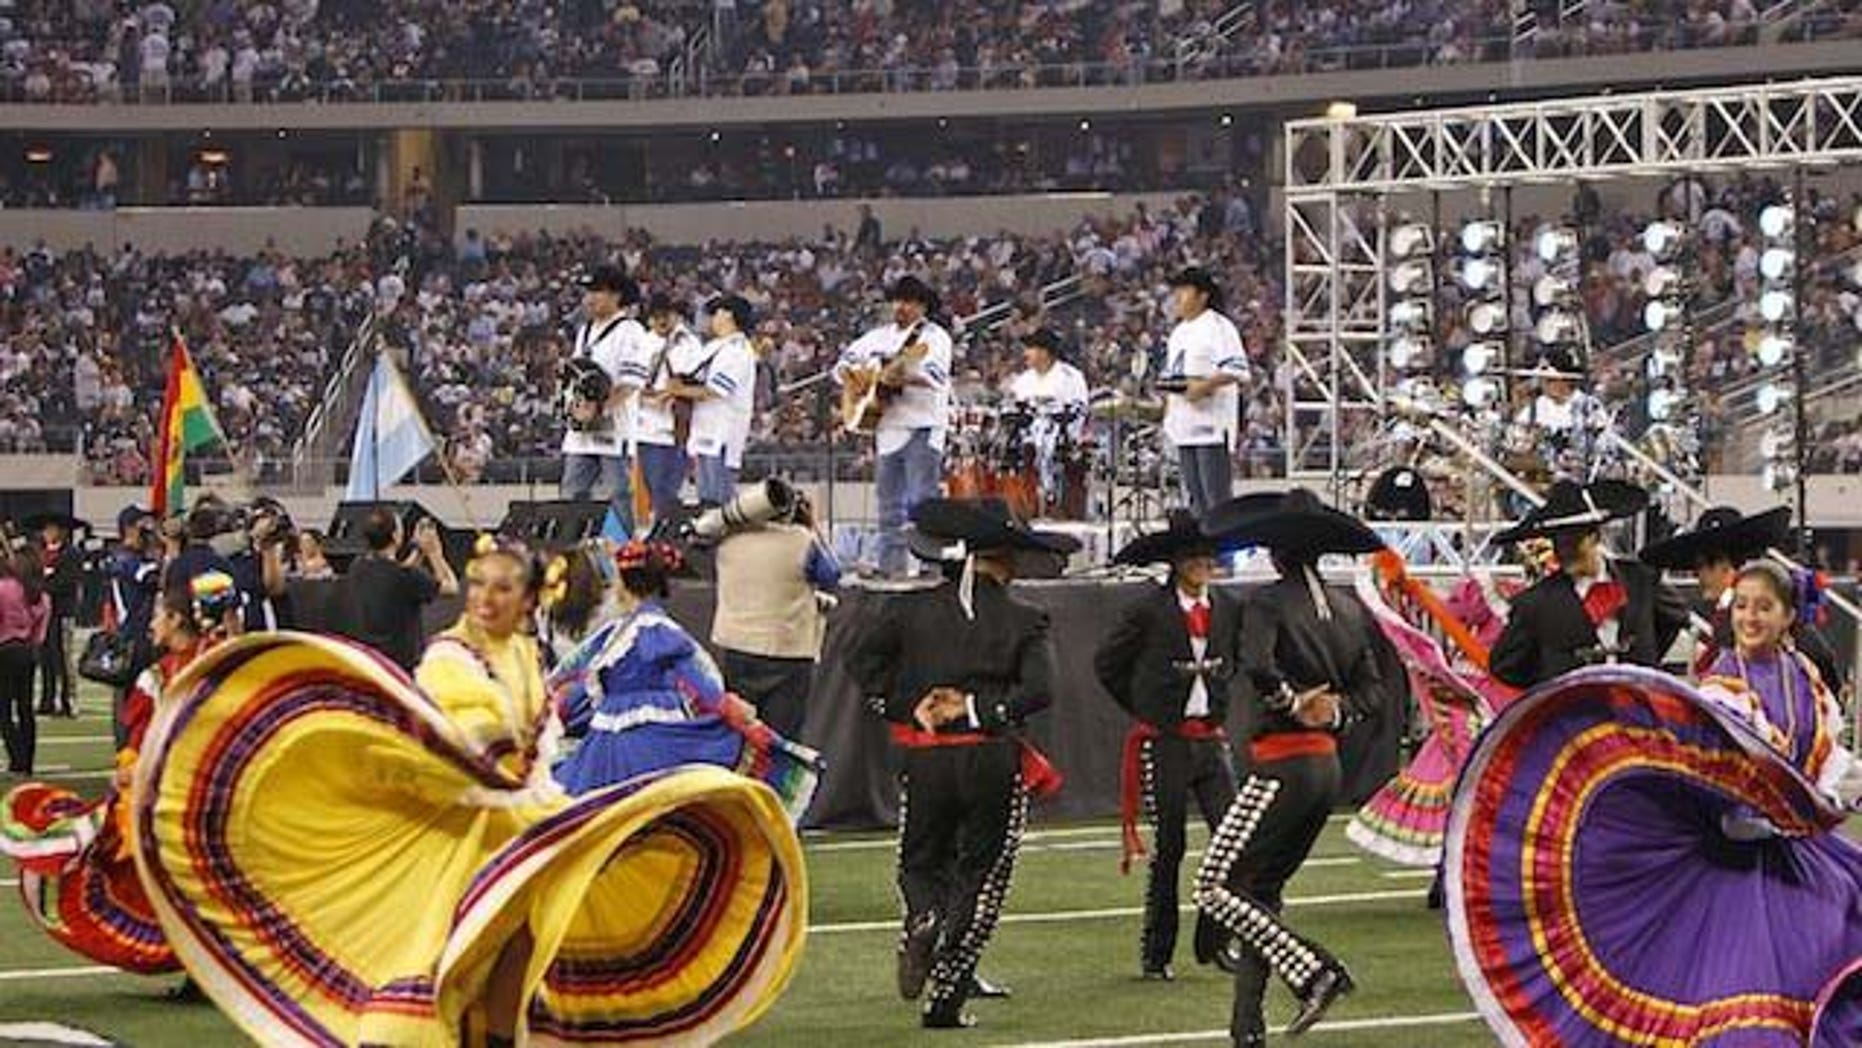 Sept. 27, 2011: 'Intocable' performs at the Dallas Cowboys stadium on Tuesday in Dallas, Texas.